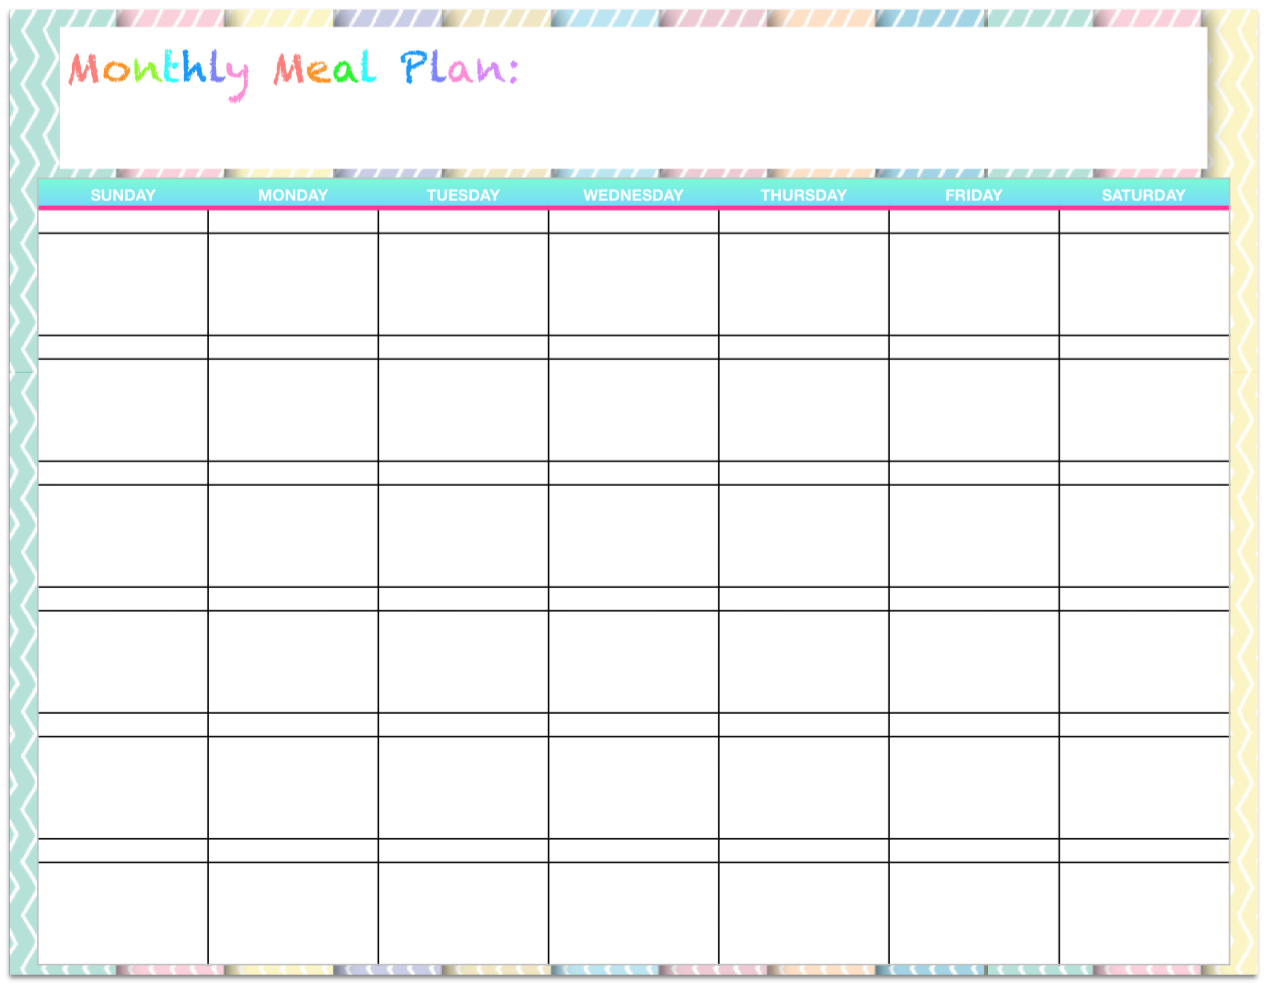 Free Templates: Monthly Menu Planners ~ The Housewife Modern - Free Printable Monthly Meal Planner